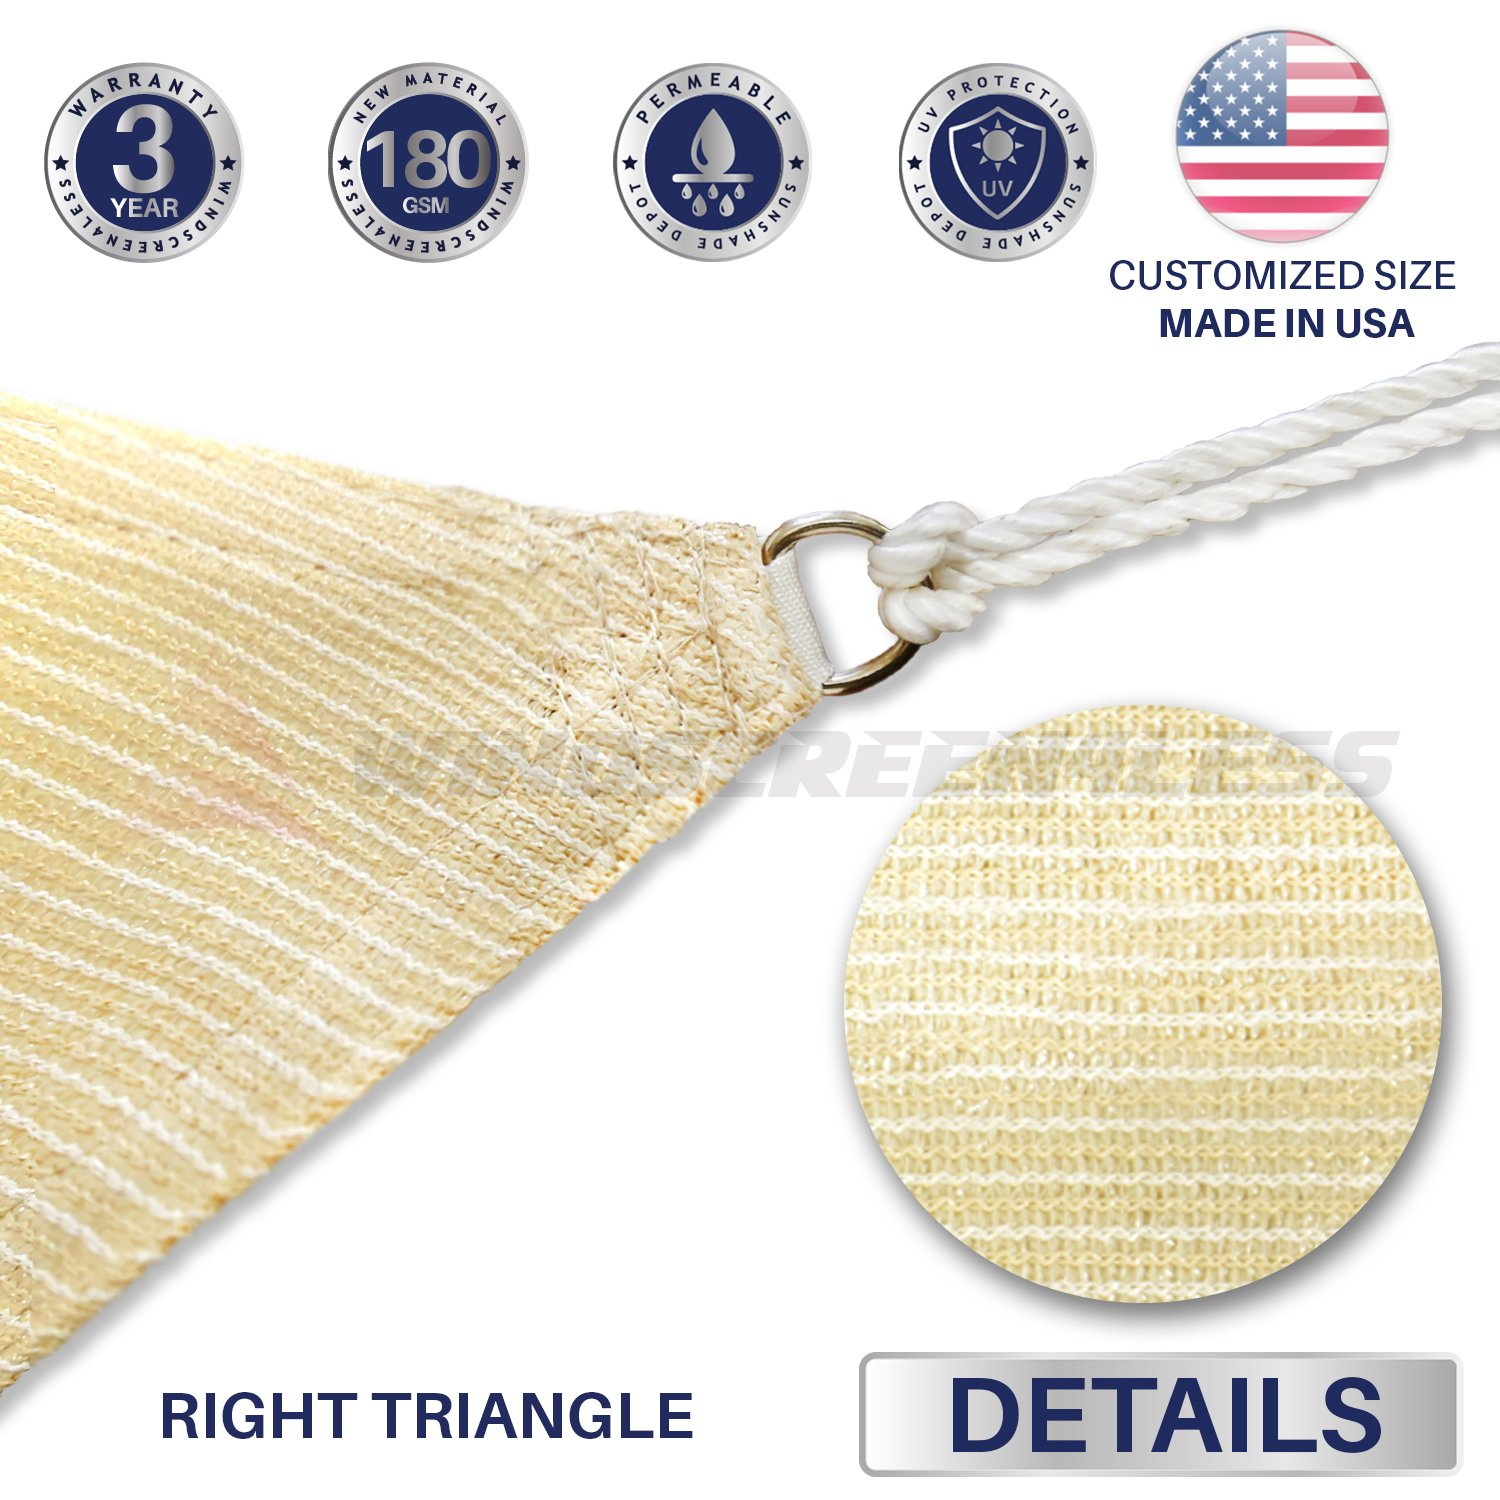 Windscreen4less 16 x 16 x 22.6 Triangle Sun Shade Sail – Beige with White Strips Durable UV Shelter Canopy for Patio Outdoor Backyard – Custom 3 Year Warranty